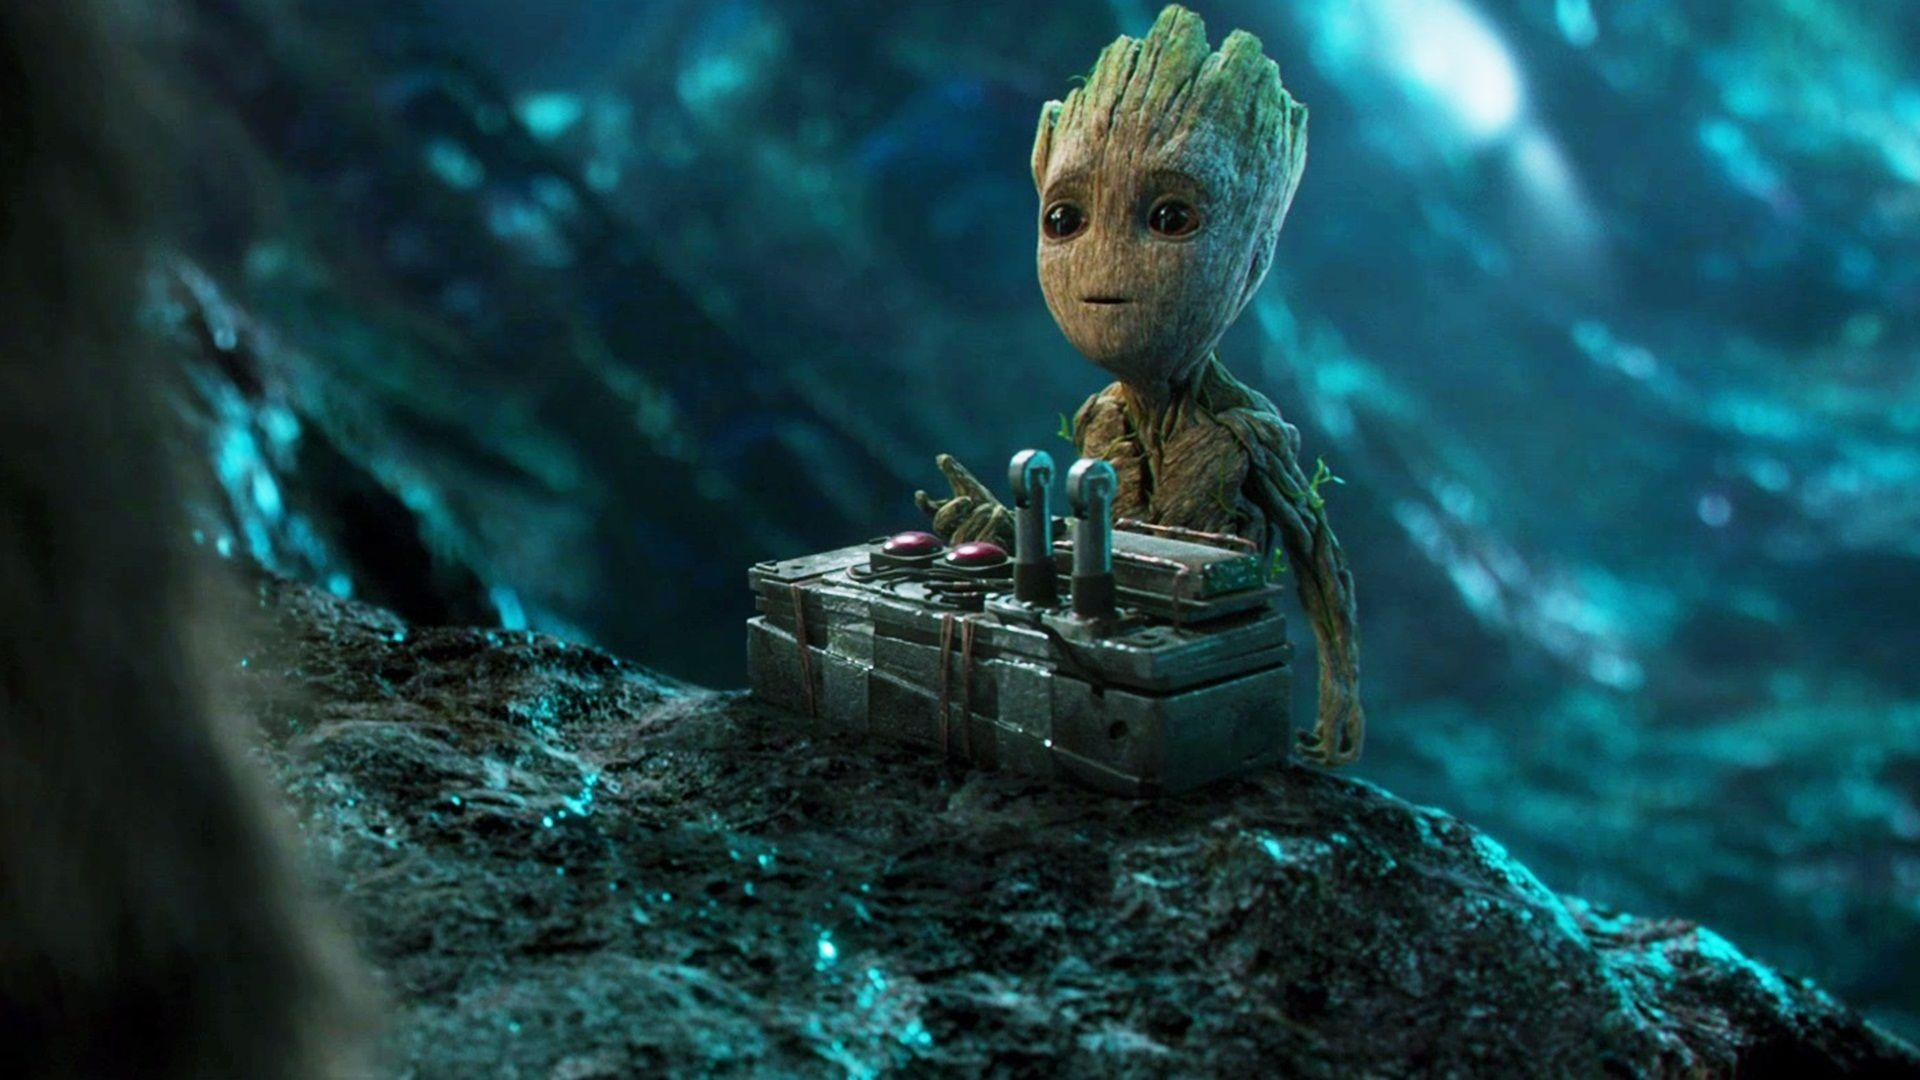 Guardians Of The Galaxy Vol 2 Wallpapers HD Backgrounds, Images ...